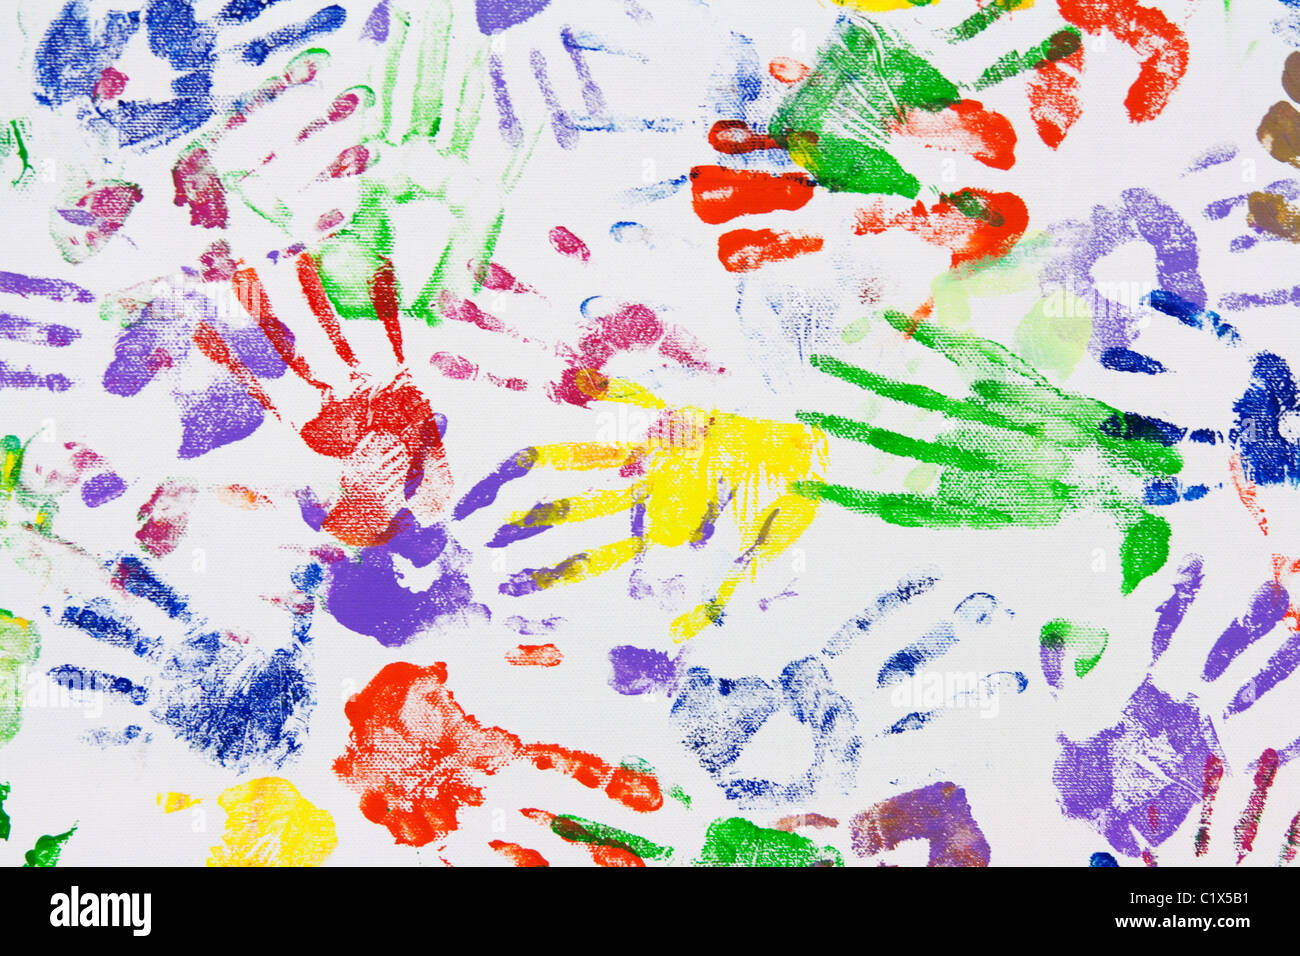 Varicoloured imprint of the hands on white canvas - Stock Image